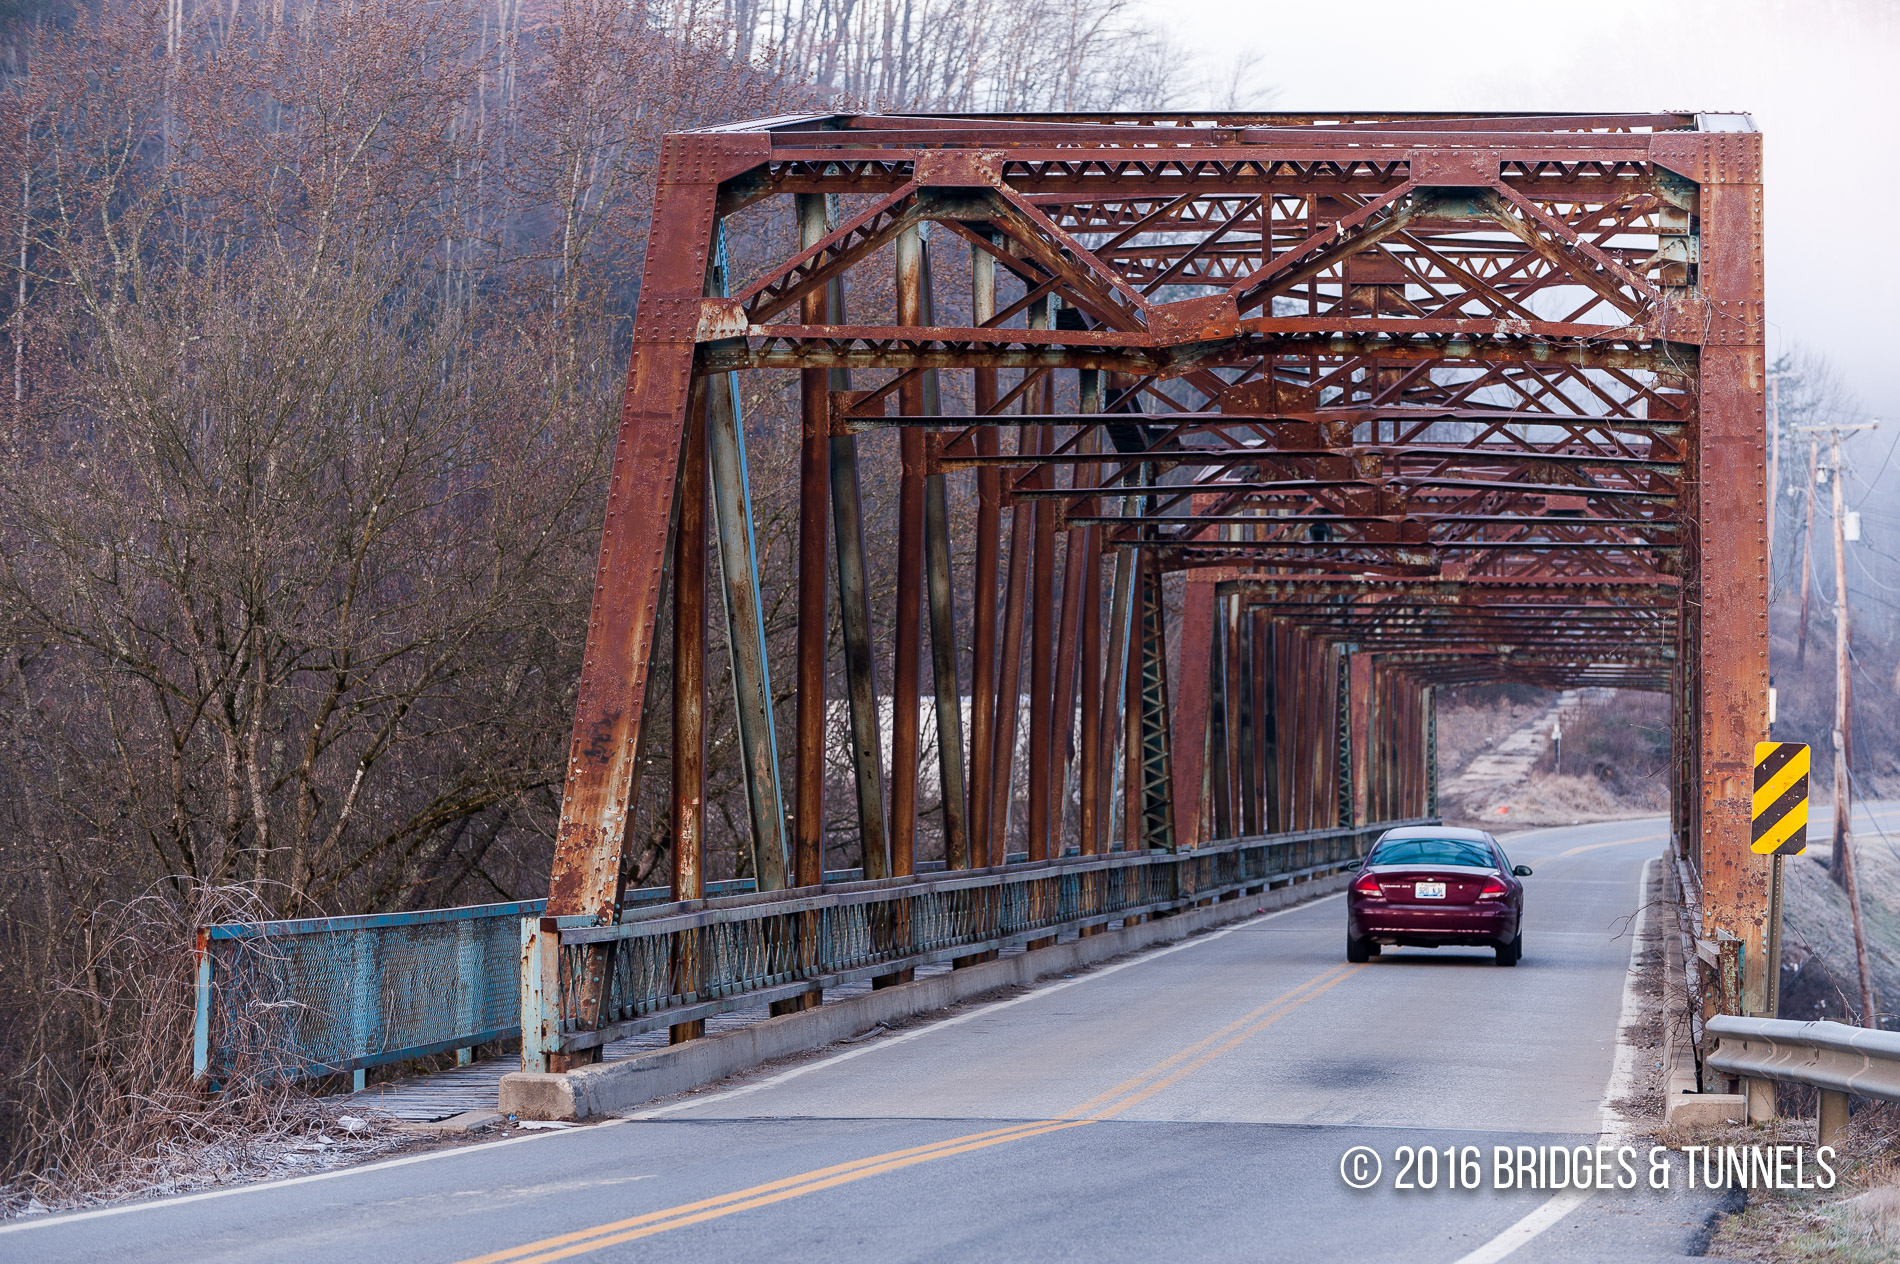 Combs Bridge (KY 80)